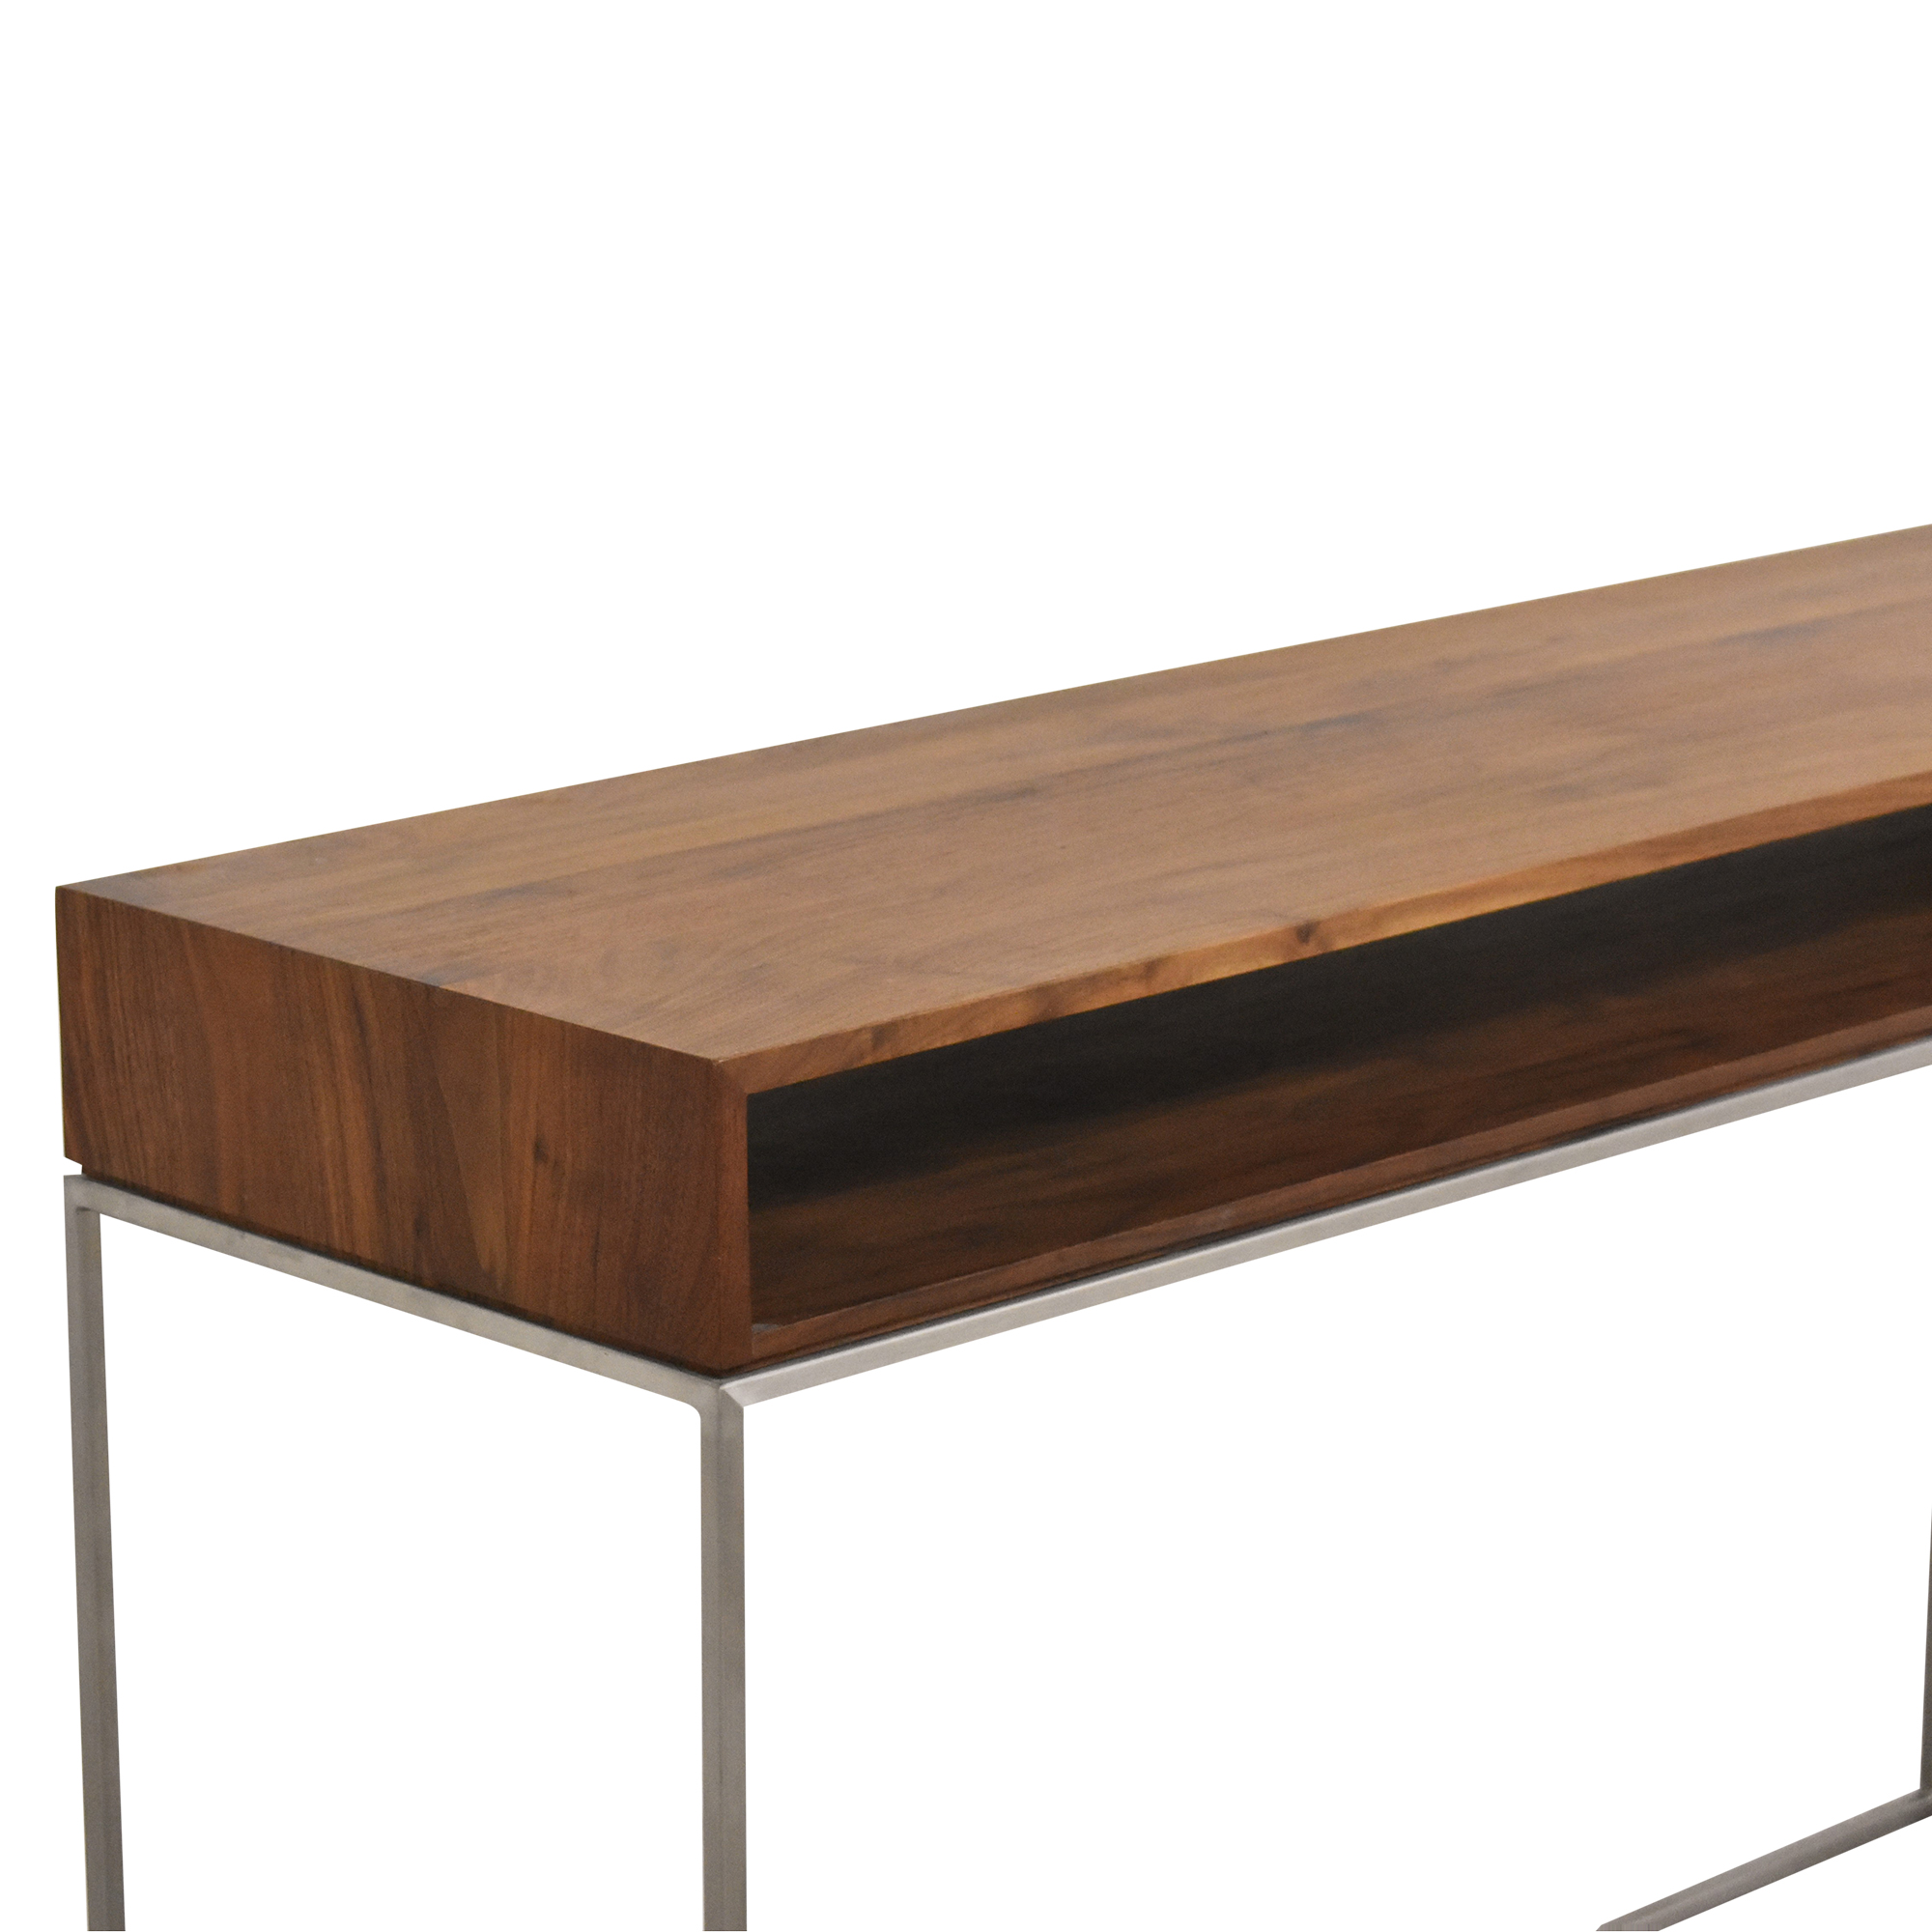 Crate & Barrel Crate & Barrel Frame Console Table pa